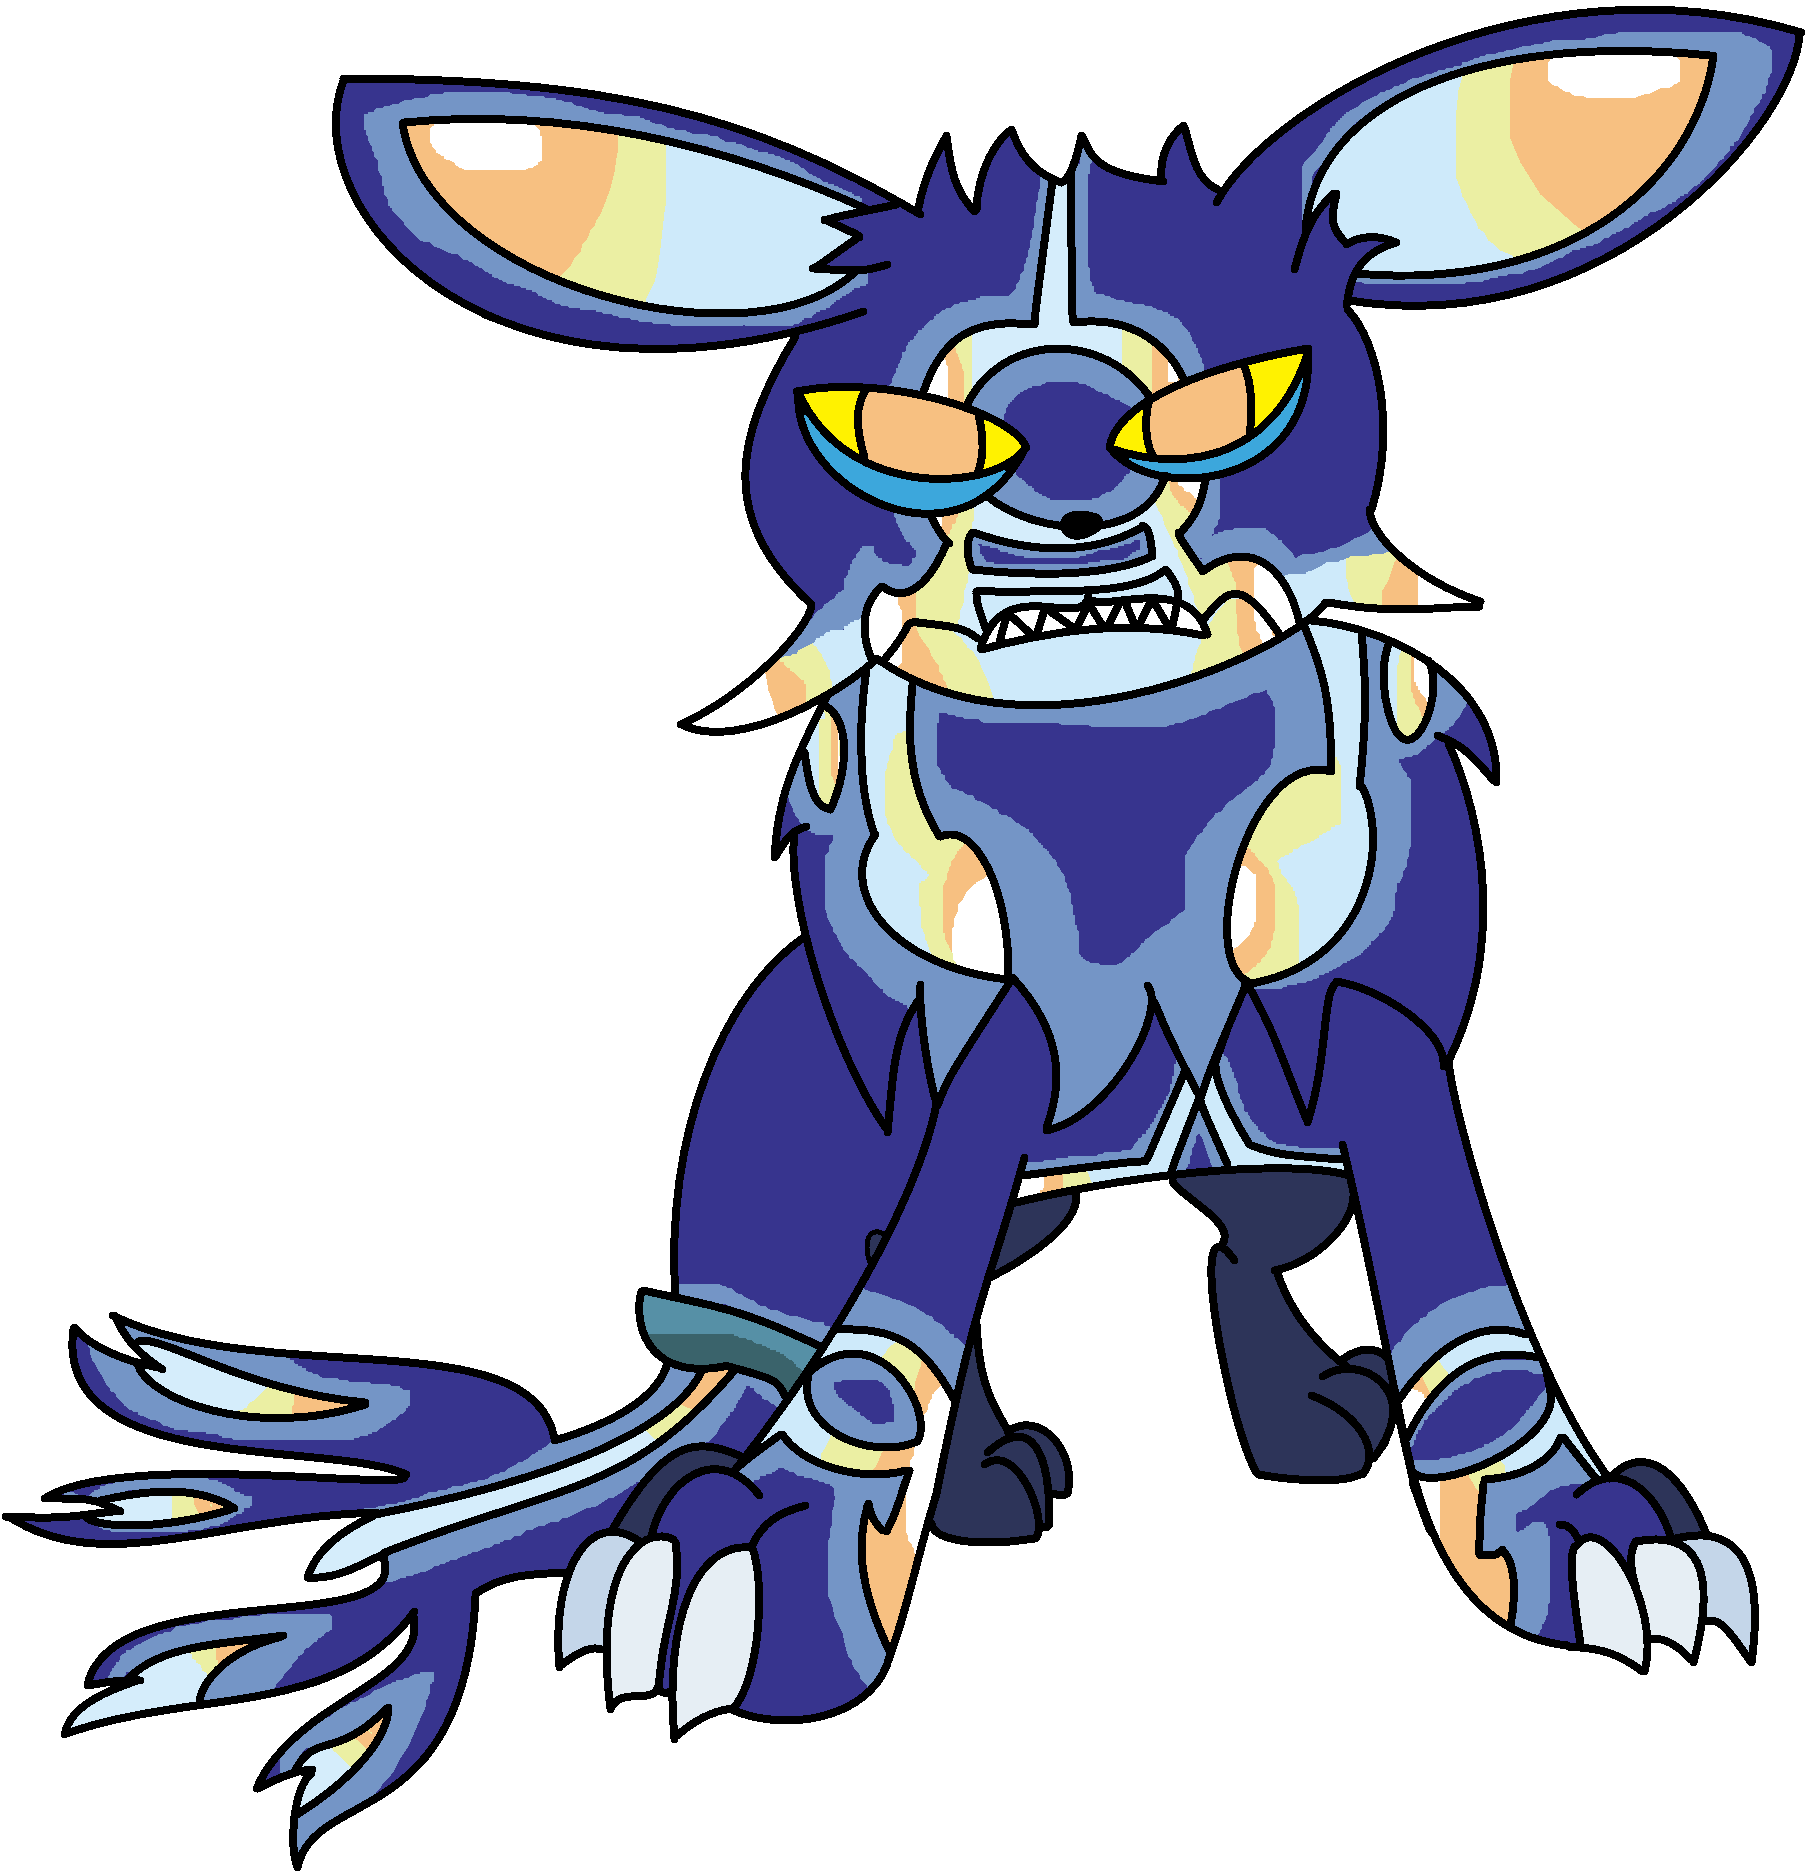 primal kyogre and eevee fusion by halotheeevee on deviantart